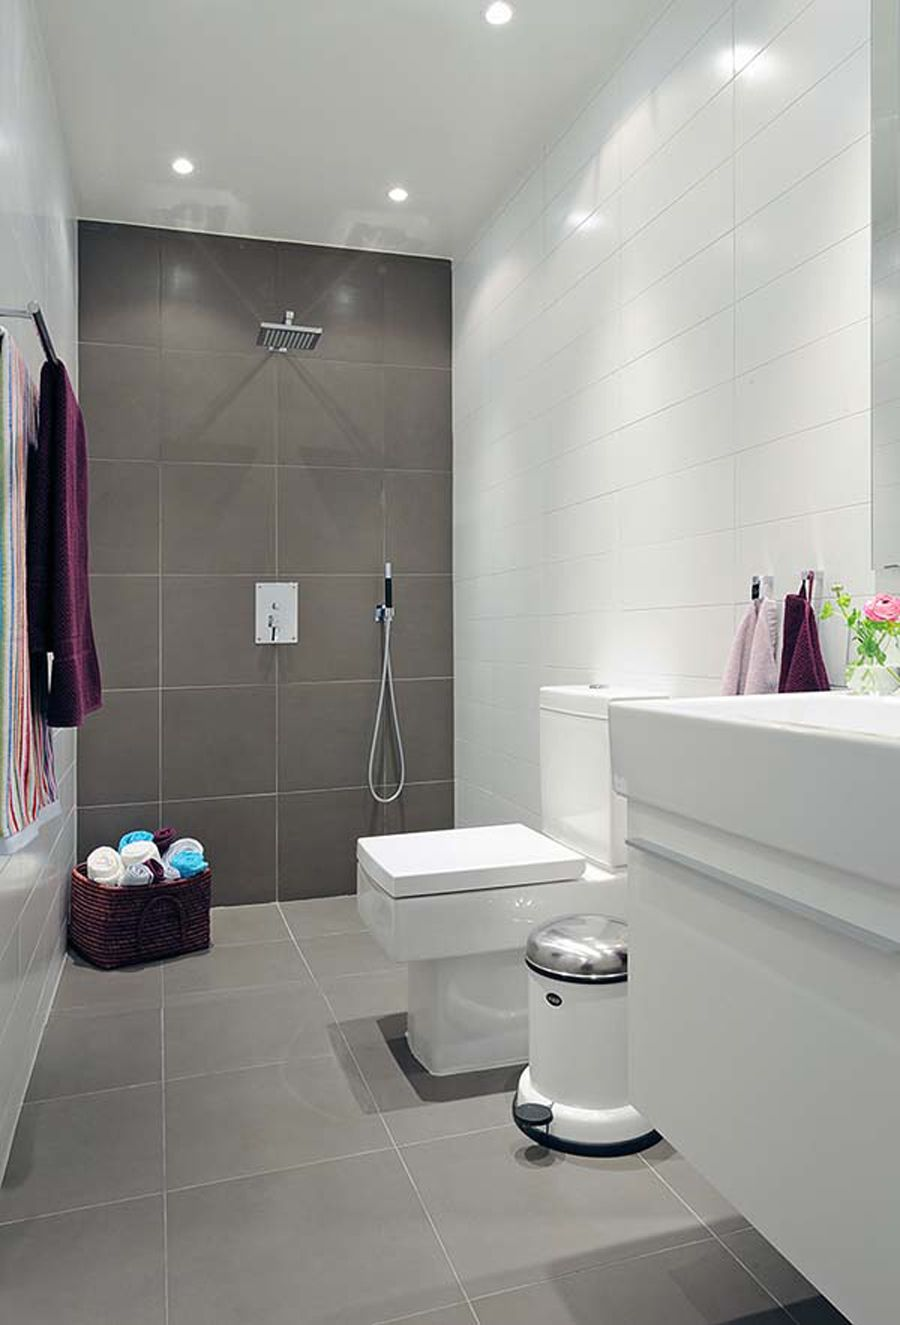 Bathroom Inspiration Home And Architecture Design Grey